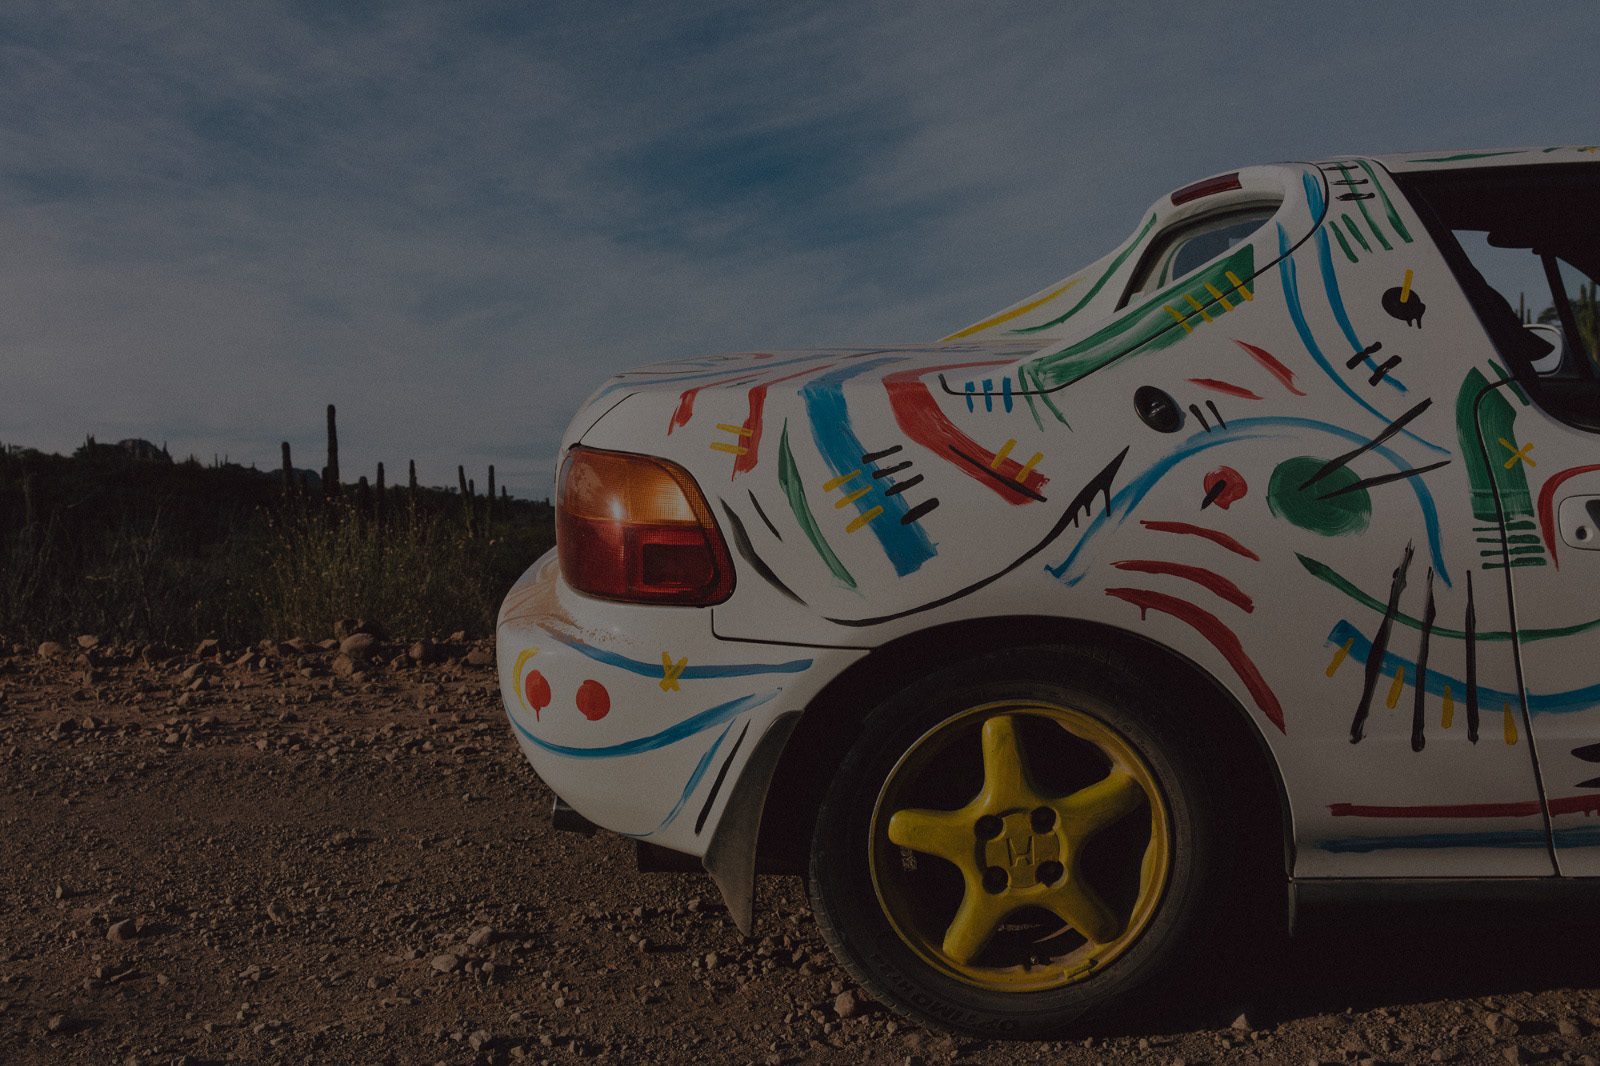 Destination del sol - A Journey Through Baja in a Wildly Painted Honda